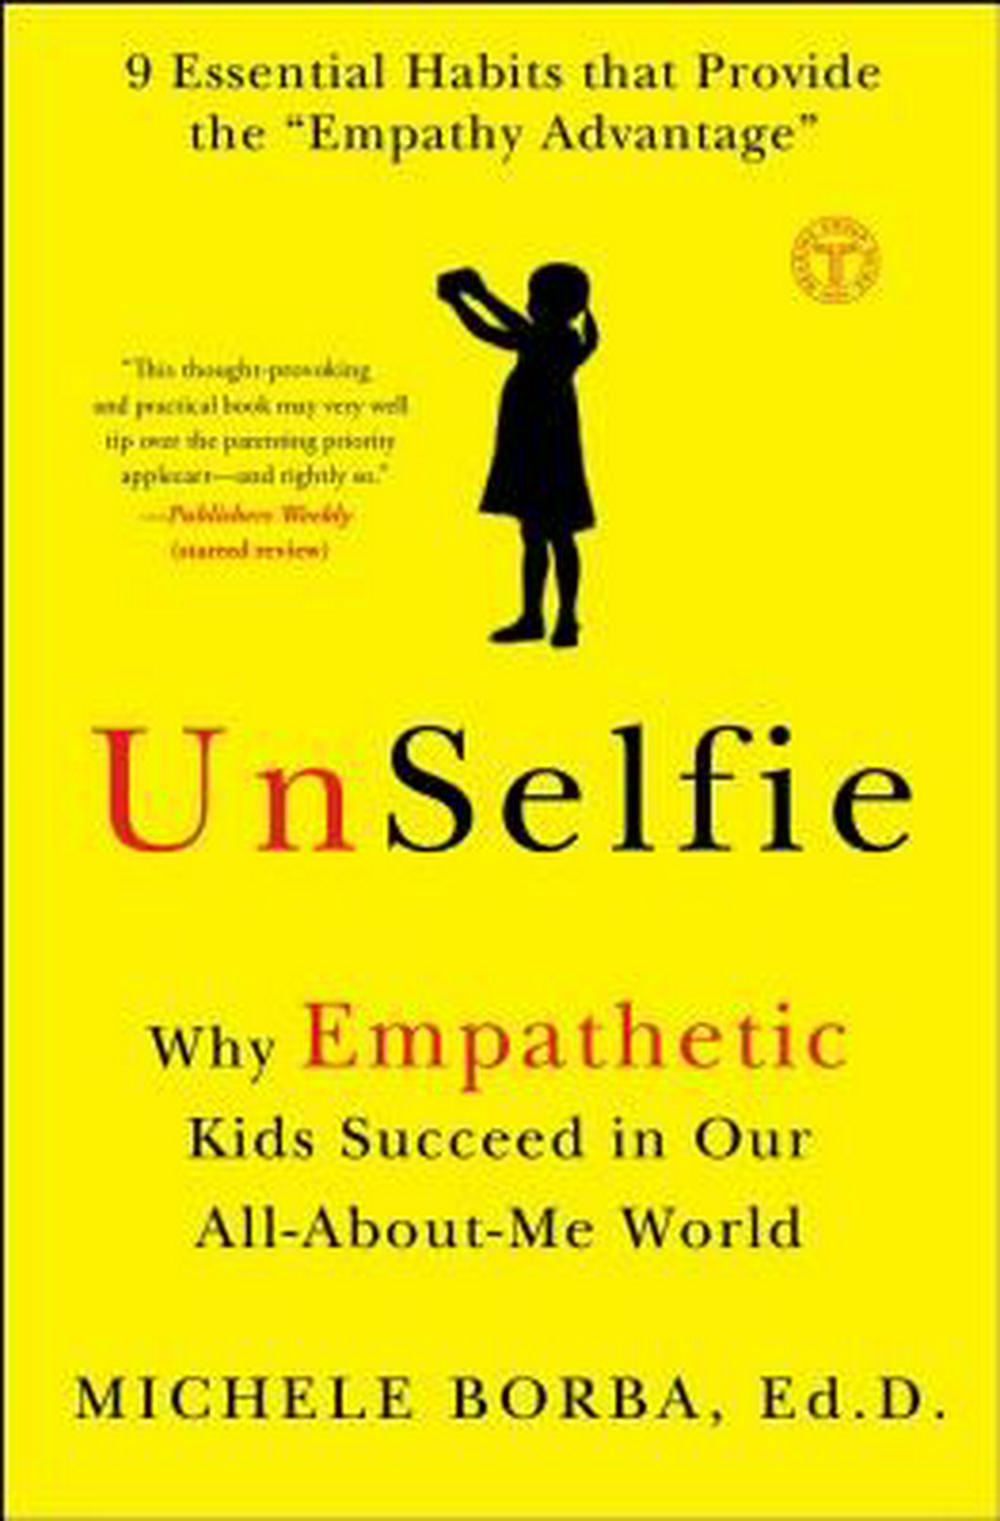 Unselfie: Why Empathetic Kids Succeed in Our All-About-Me World by Michele Borba, ISBN: 9781501110078